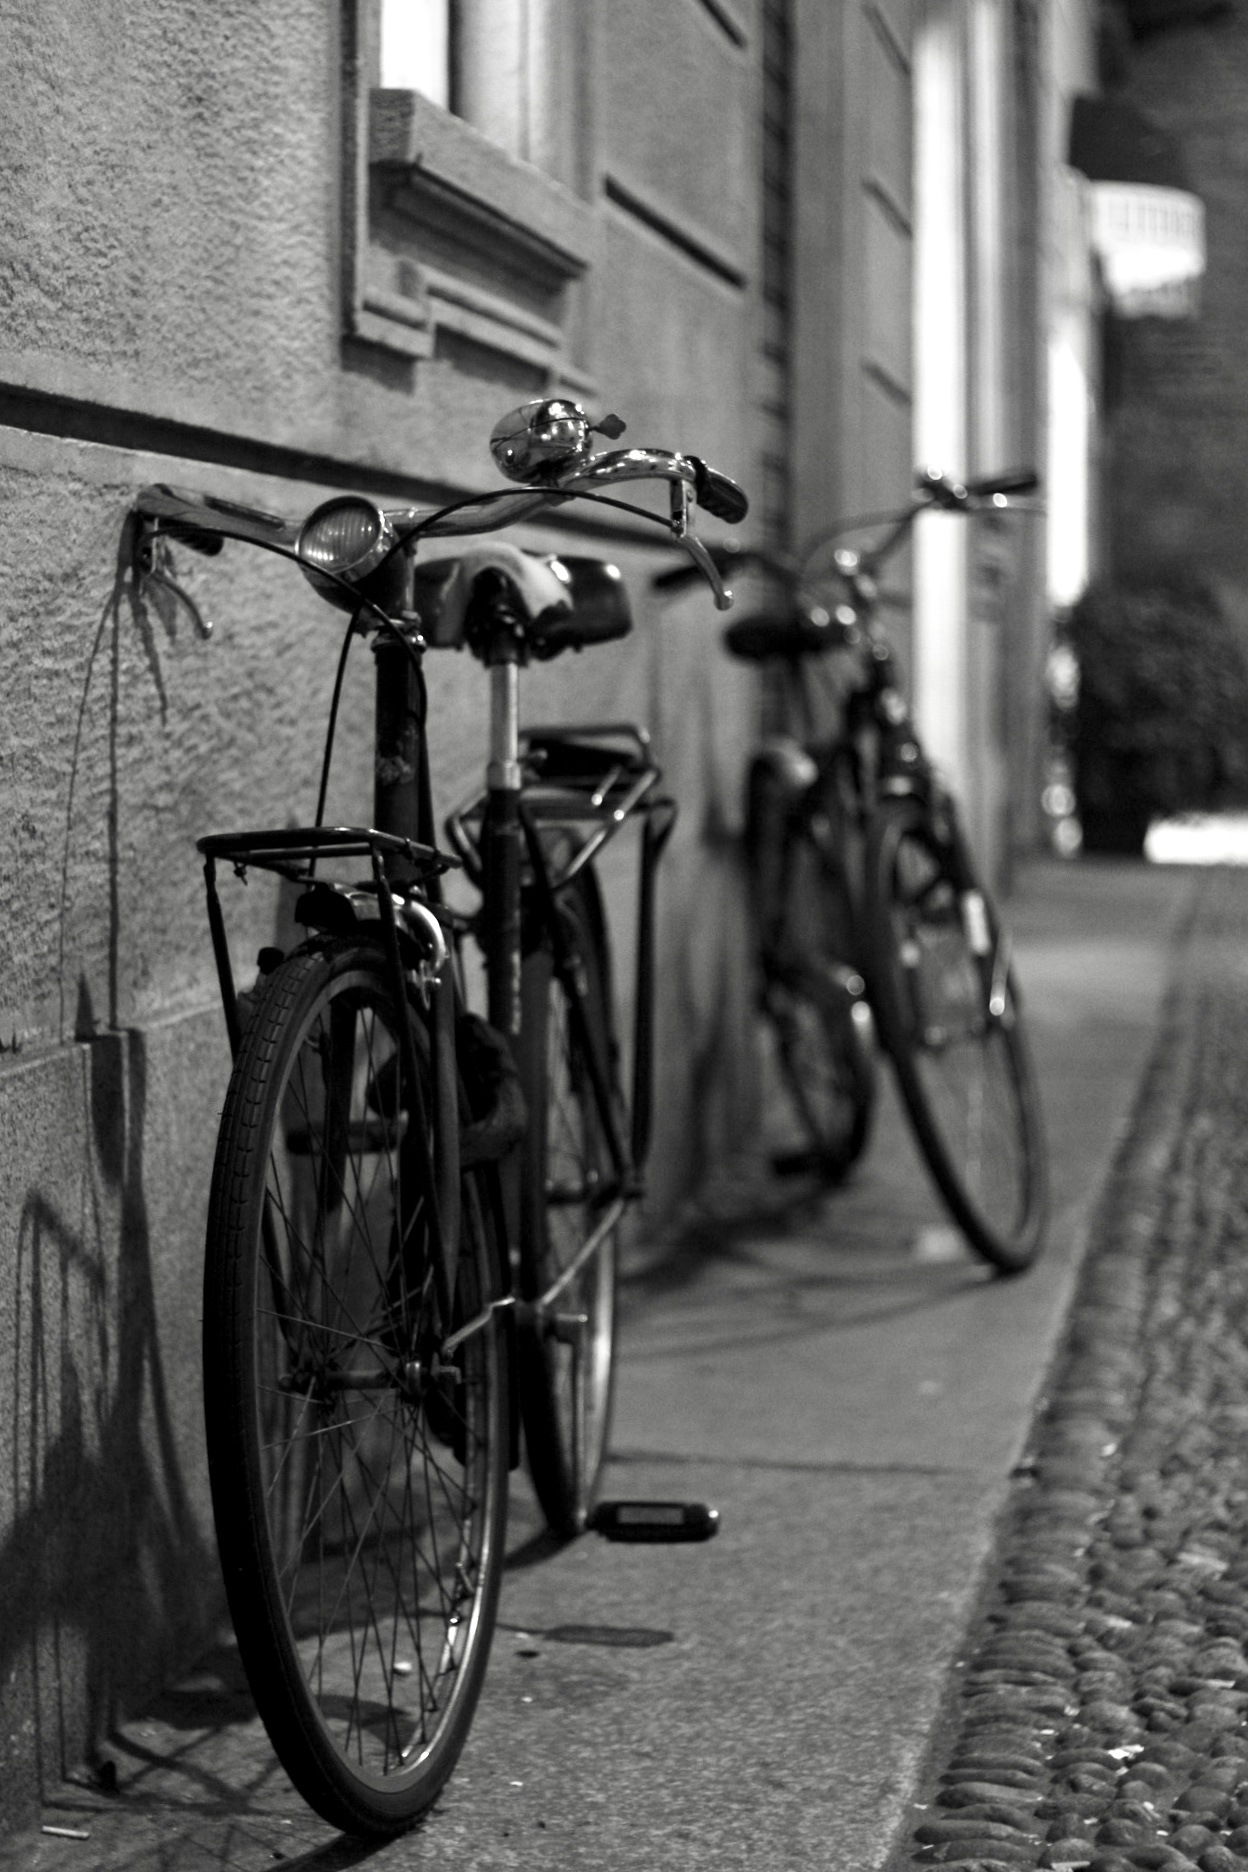 Bike by Marco Lucio Cattaneo